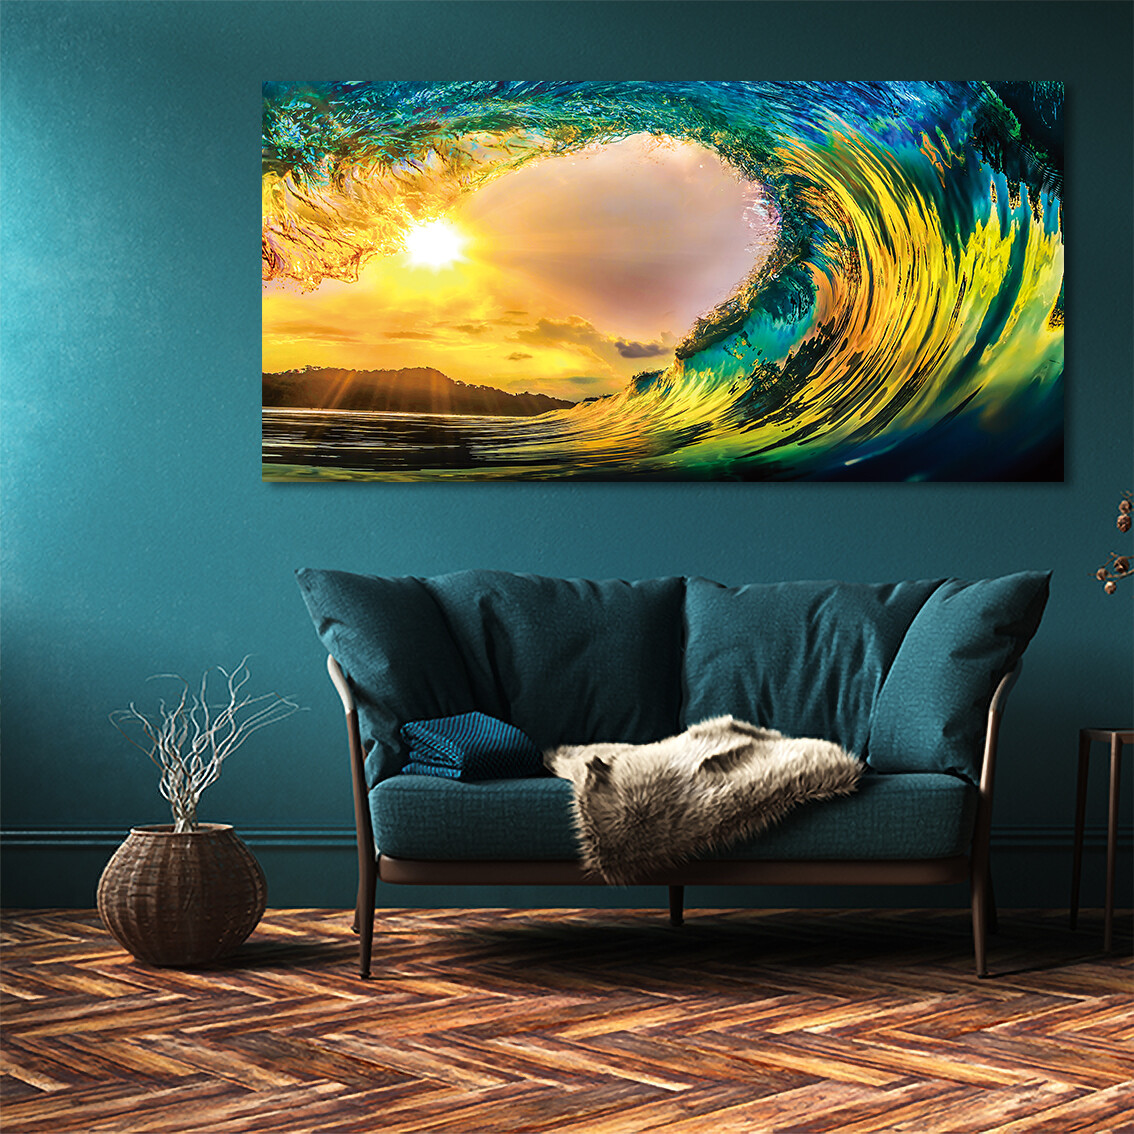 Tropical Sunset  - Modern Luxury Wall art Printed on Acrylic Glass - Frameless and Ready to Hang